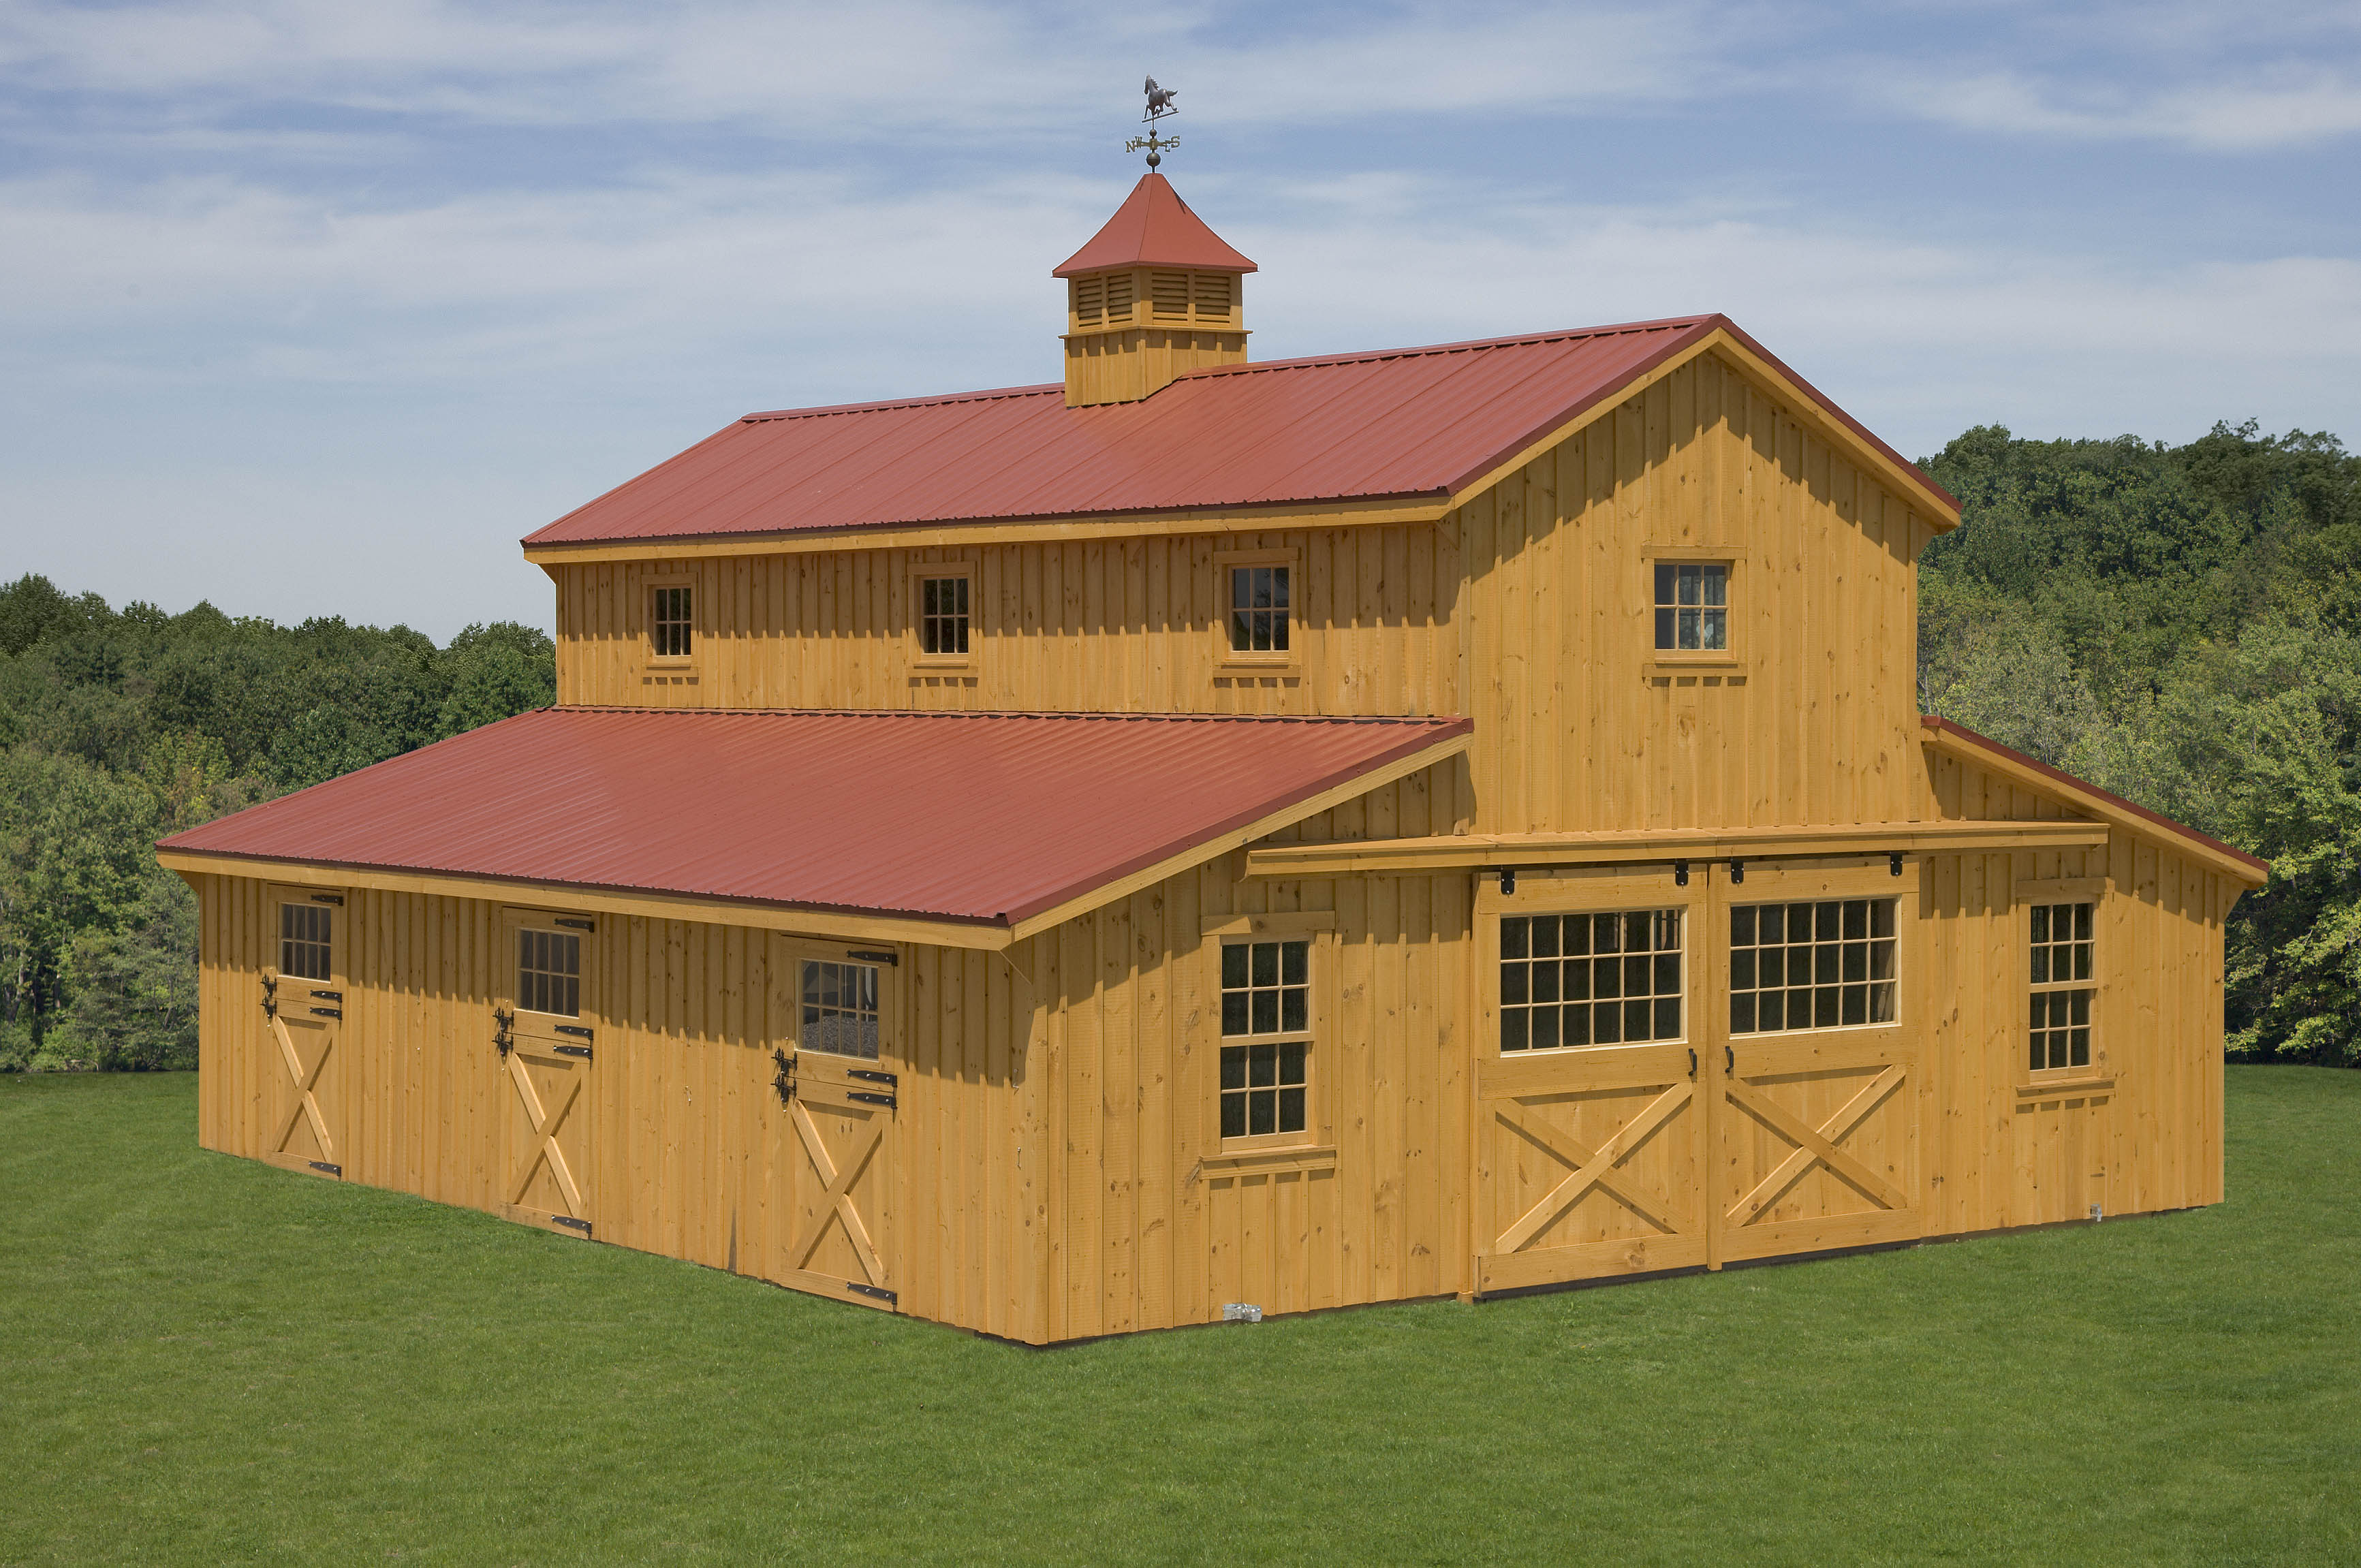 post barns and horse commons wiki wikimedia barn amish beautiful beam file jpg